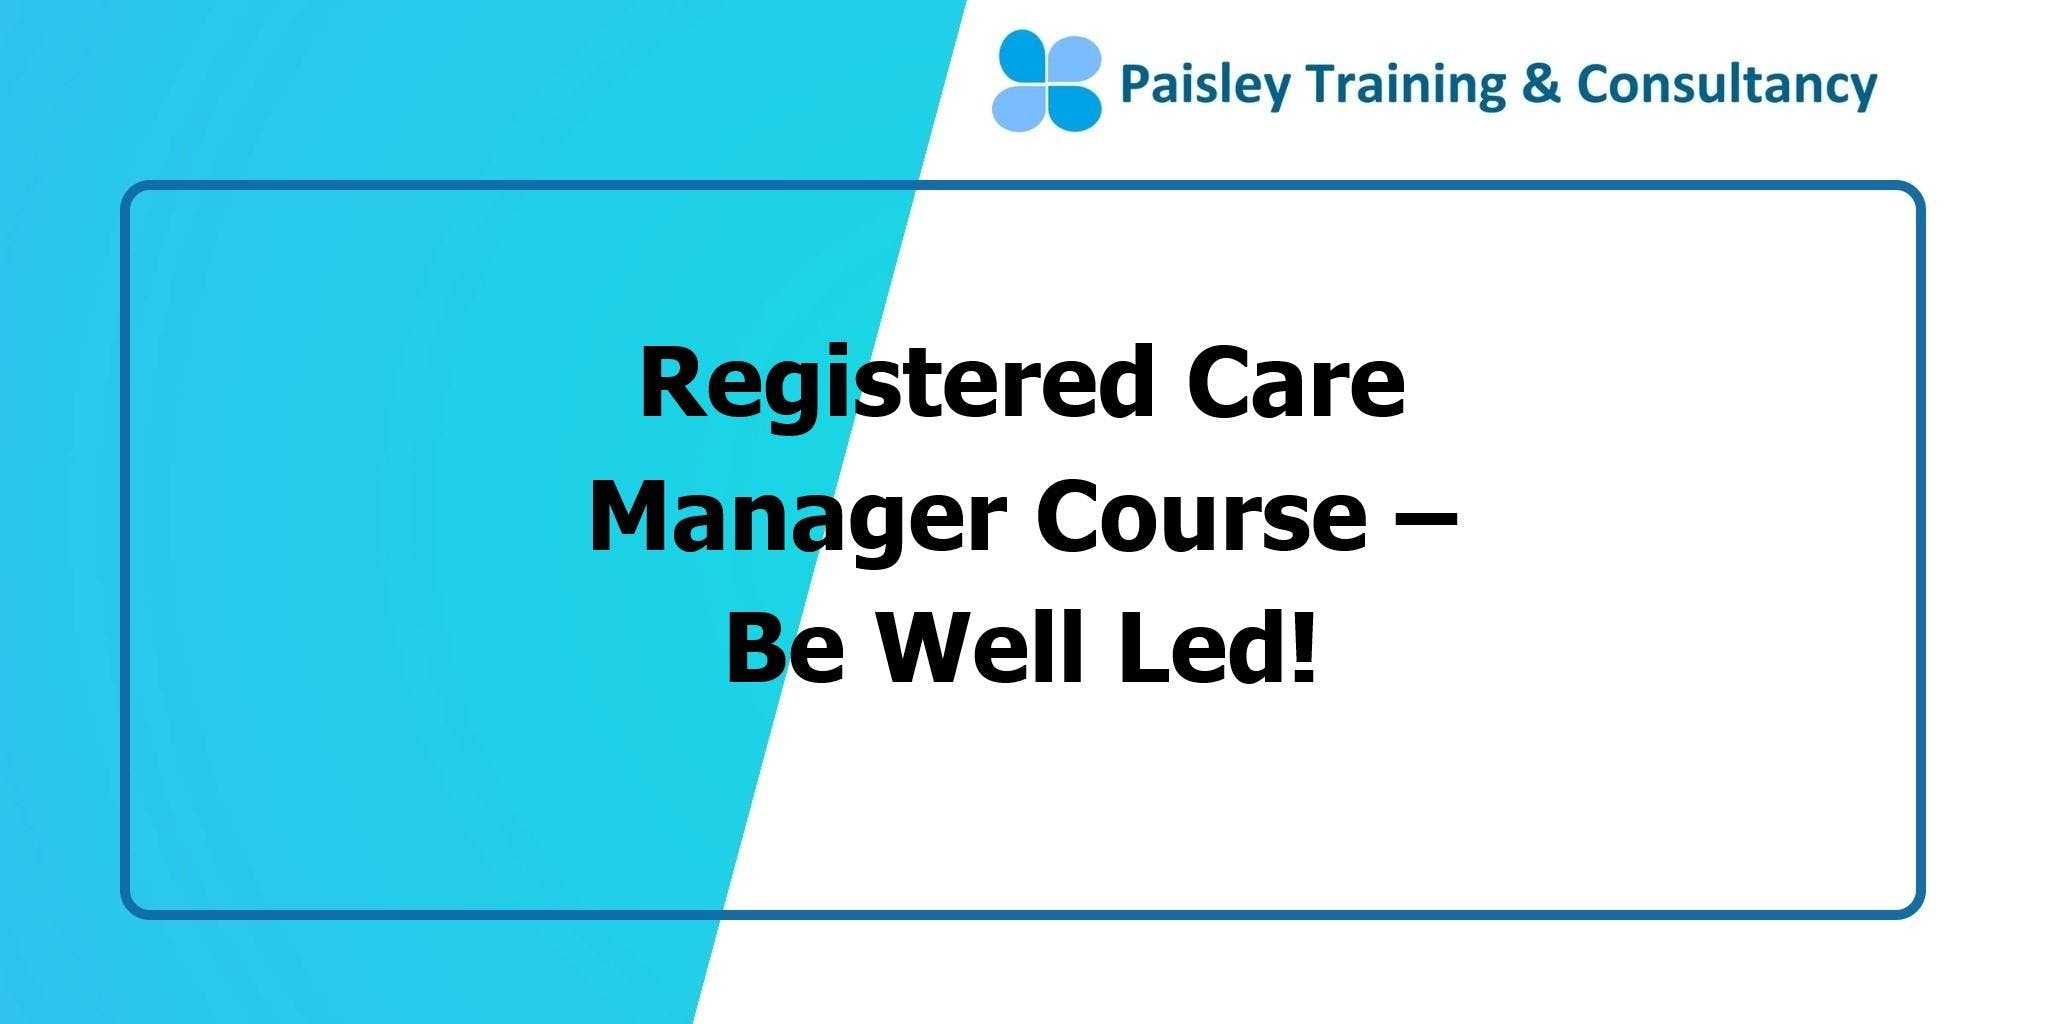 Registered Care Manager Course  Be Well Led